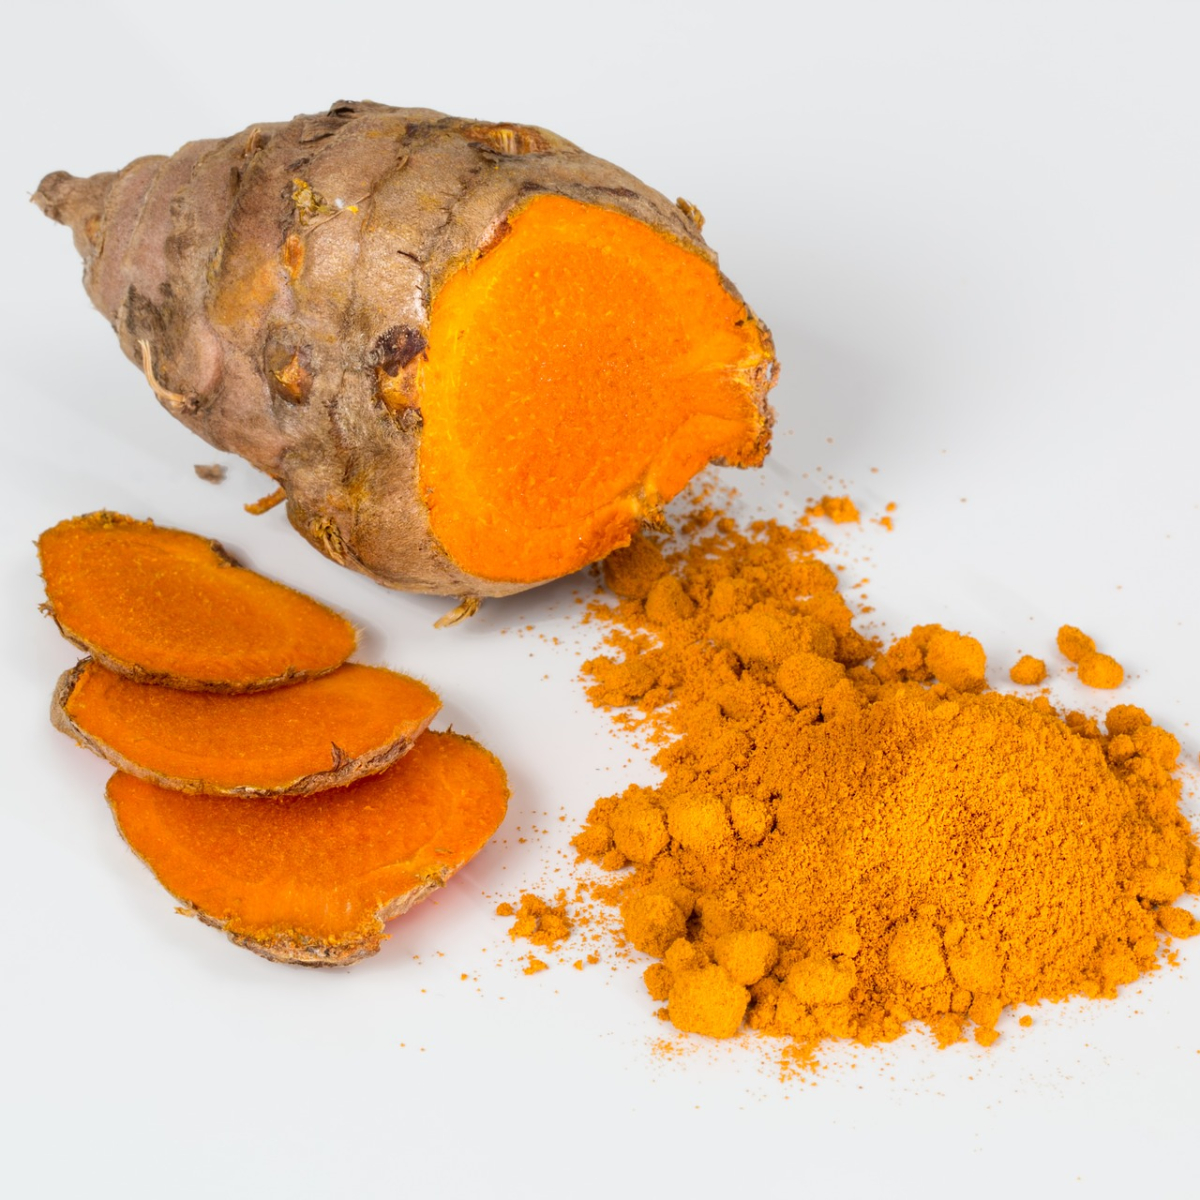 Diabetes: Here's how Turmeric can help you to regulate blood sugar levels